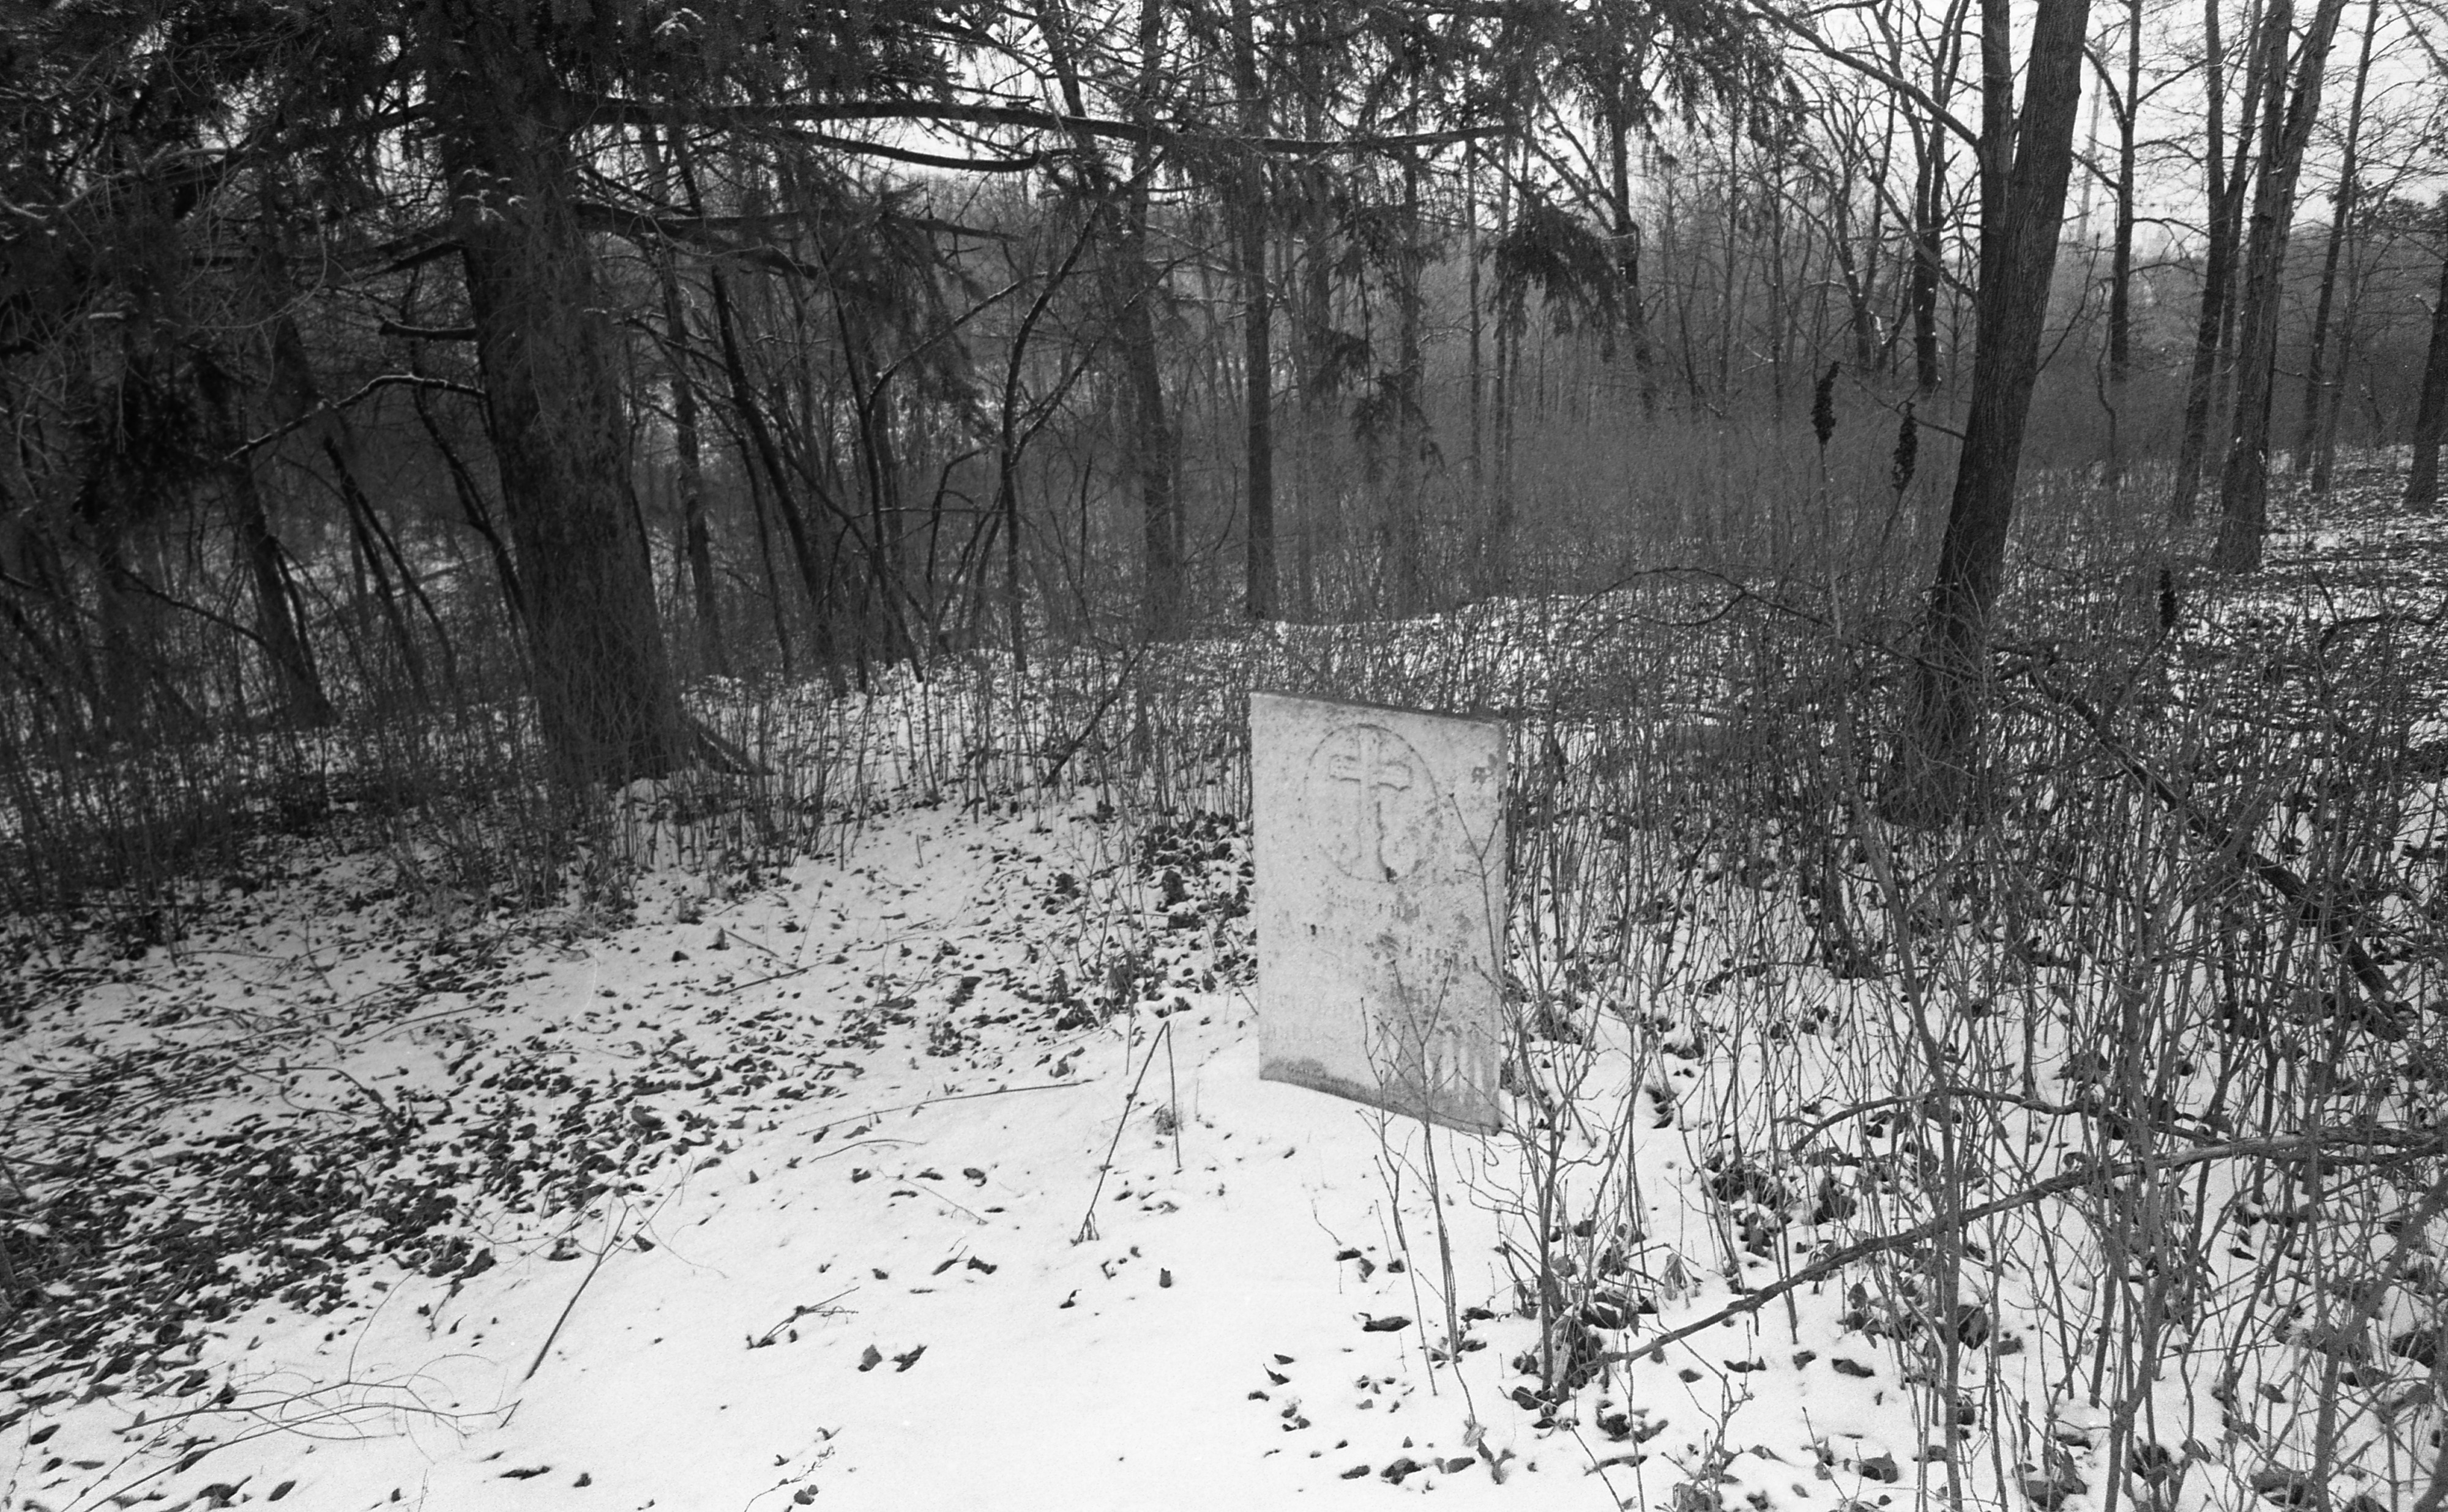 Grave Of Anastasia Dettling - Schneider Road Cemetery, Freedom Township, March 1980 image